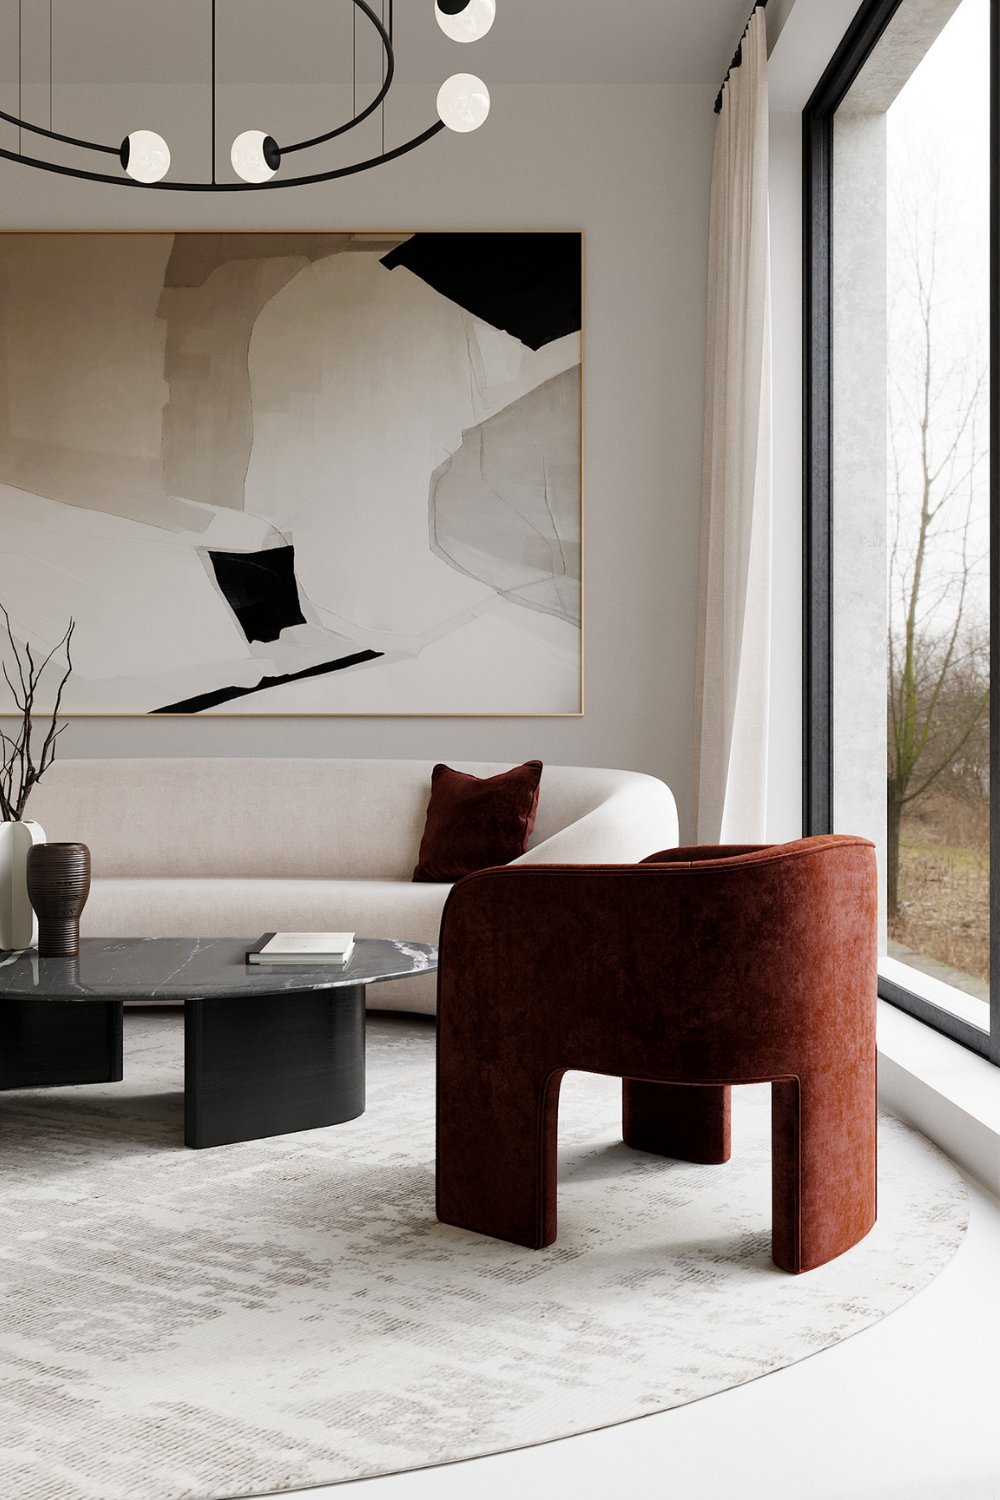 Minimalist Interiors Throught Lines And Neutral Tones